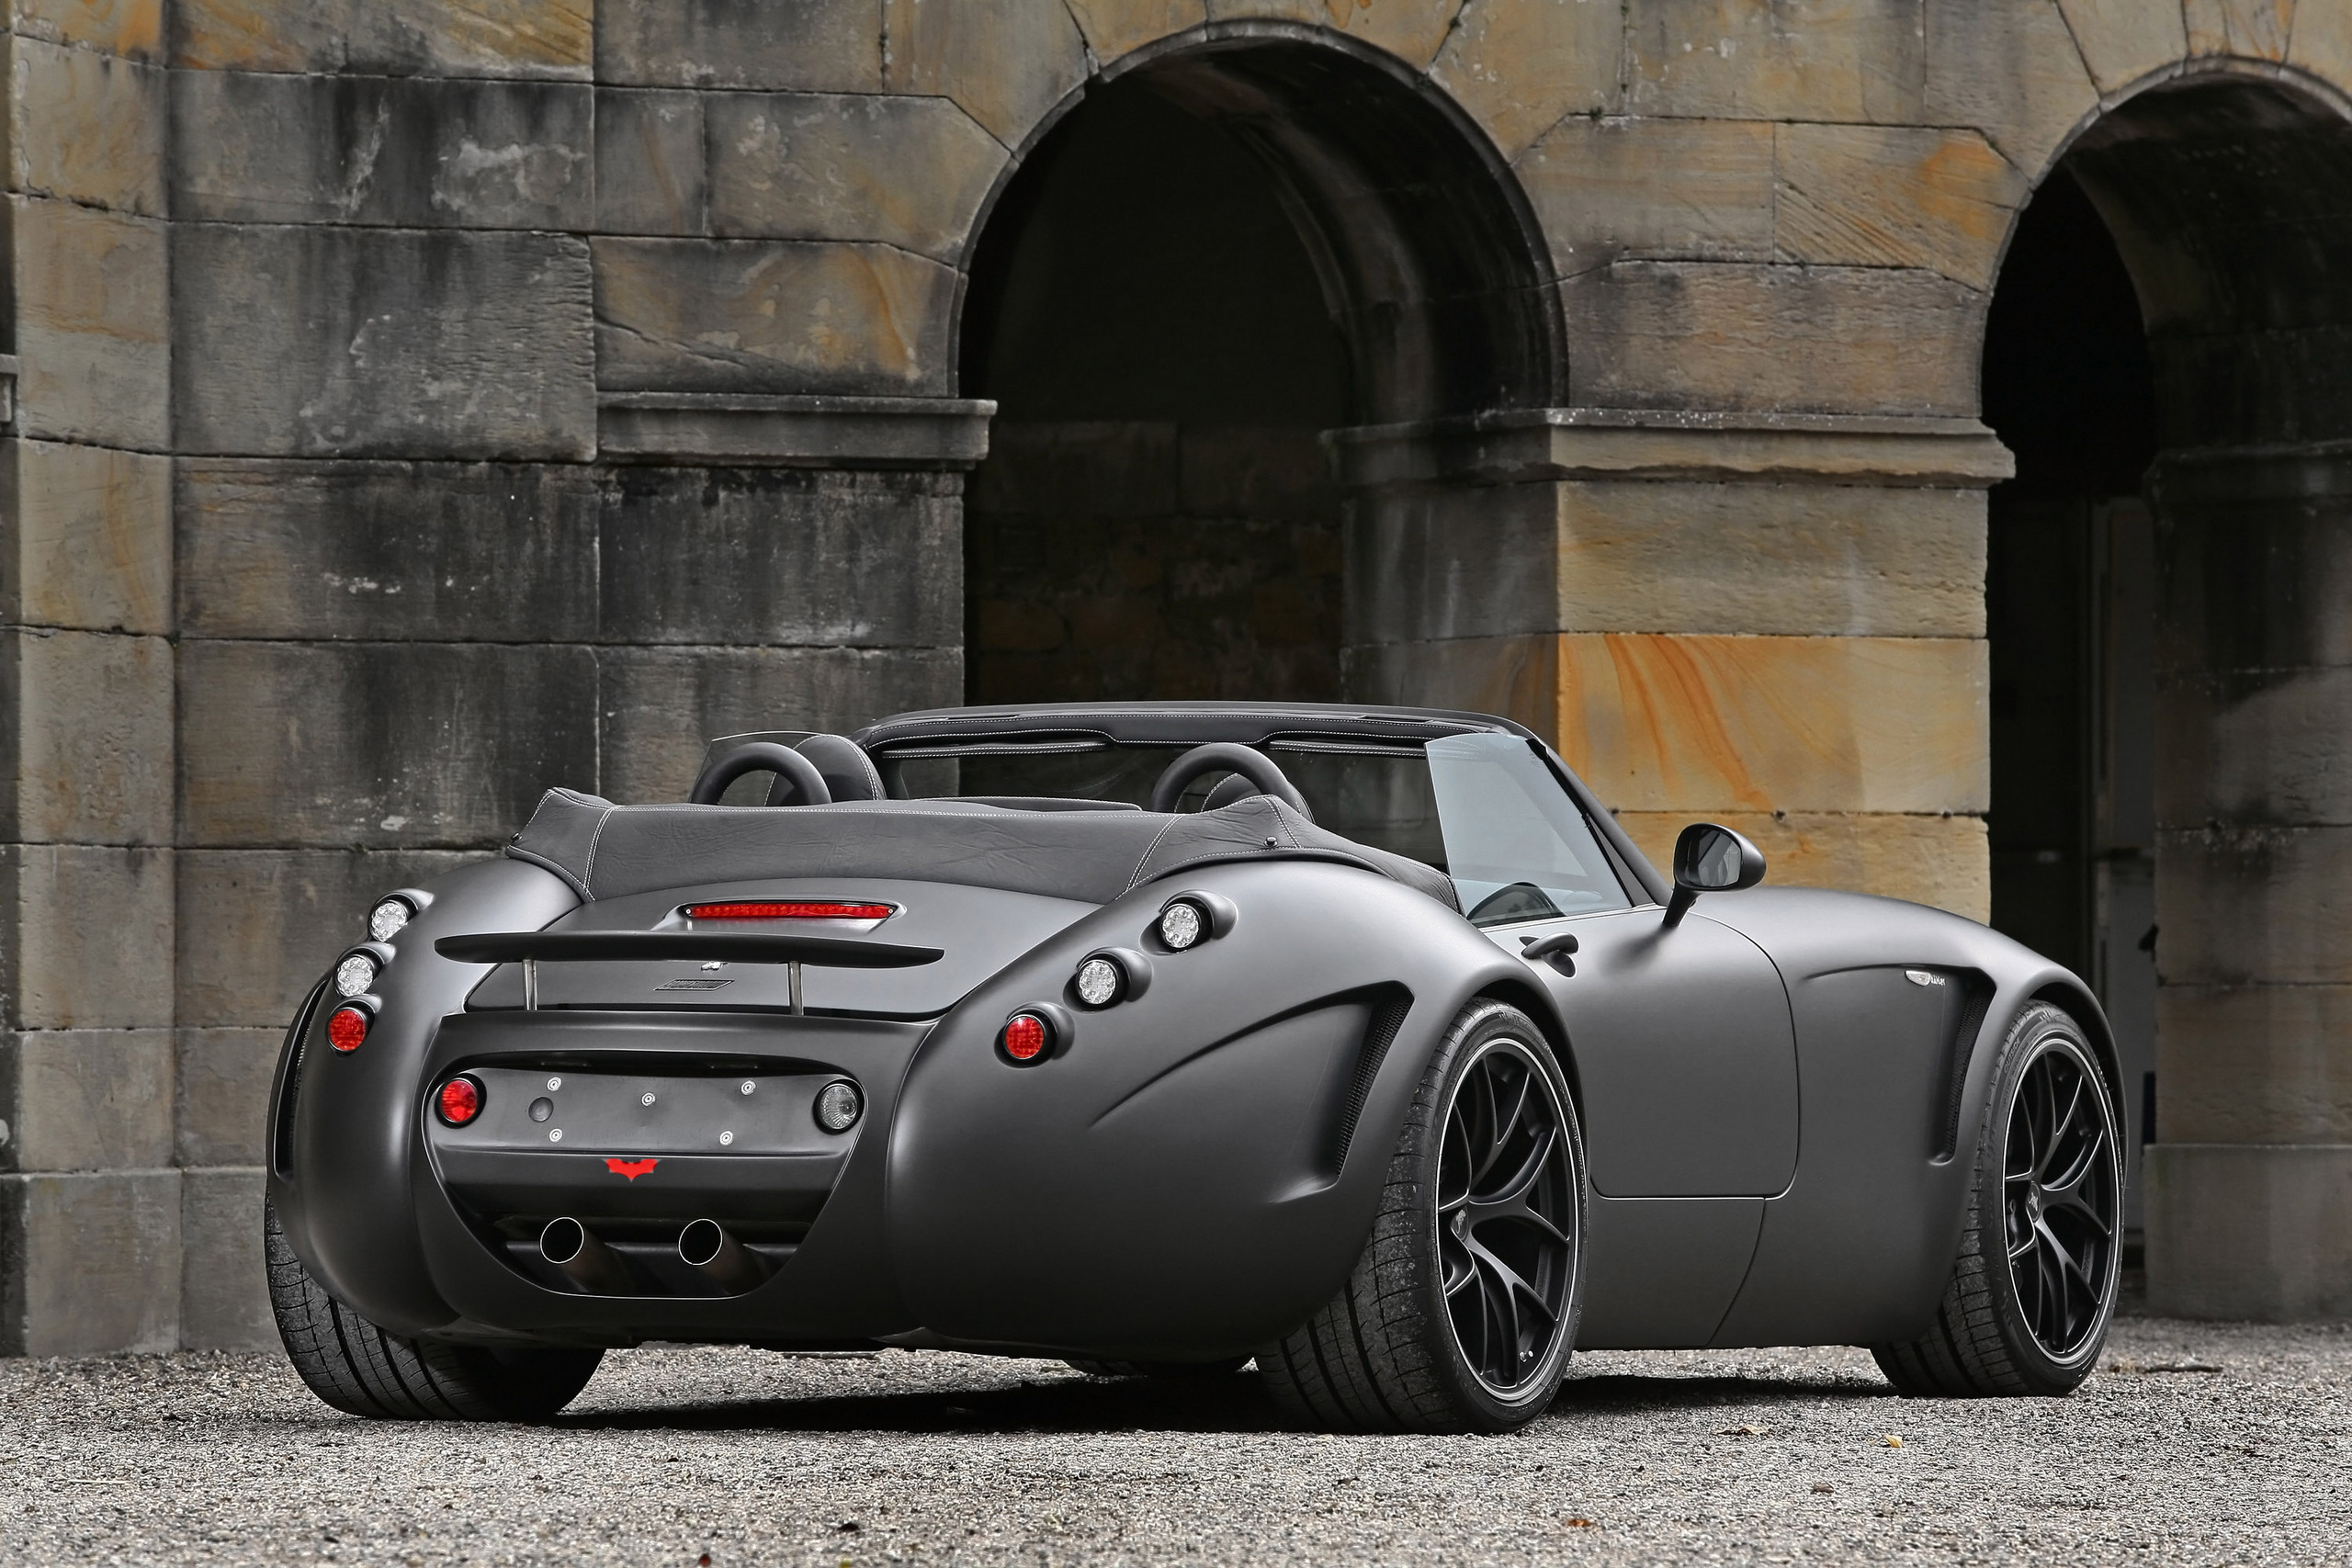 sports cars images wiesmann black bat hd wallpaper and background photos 26764790. Black Bedroom Furniture Sets. Home Design Ideas